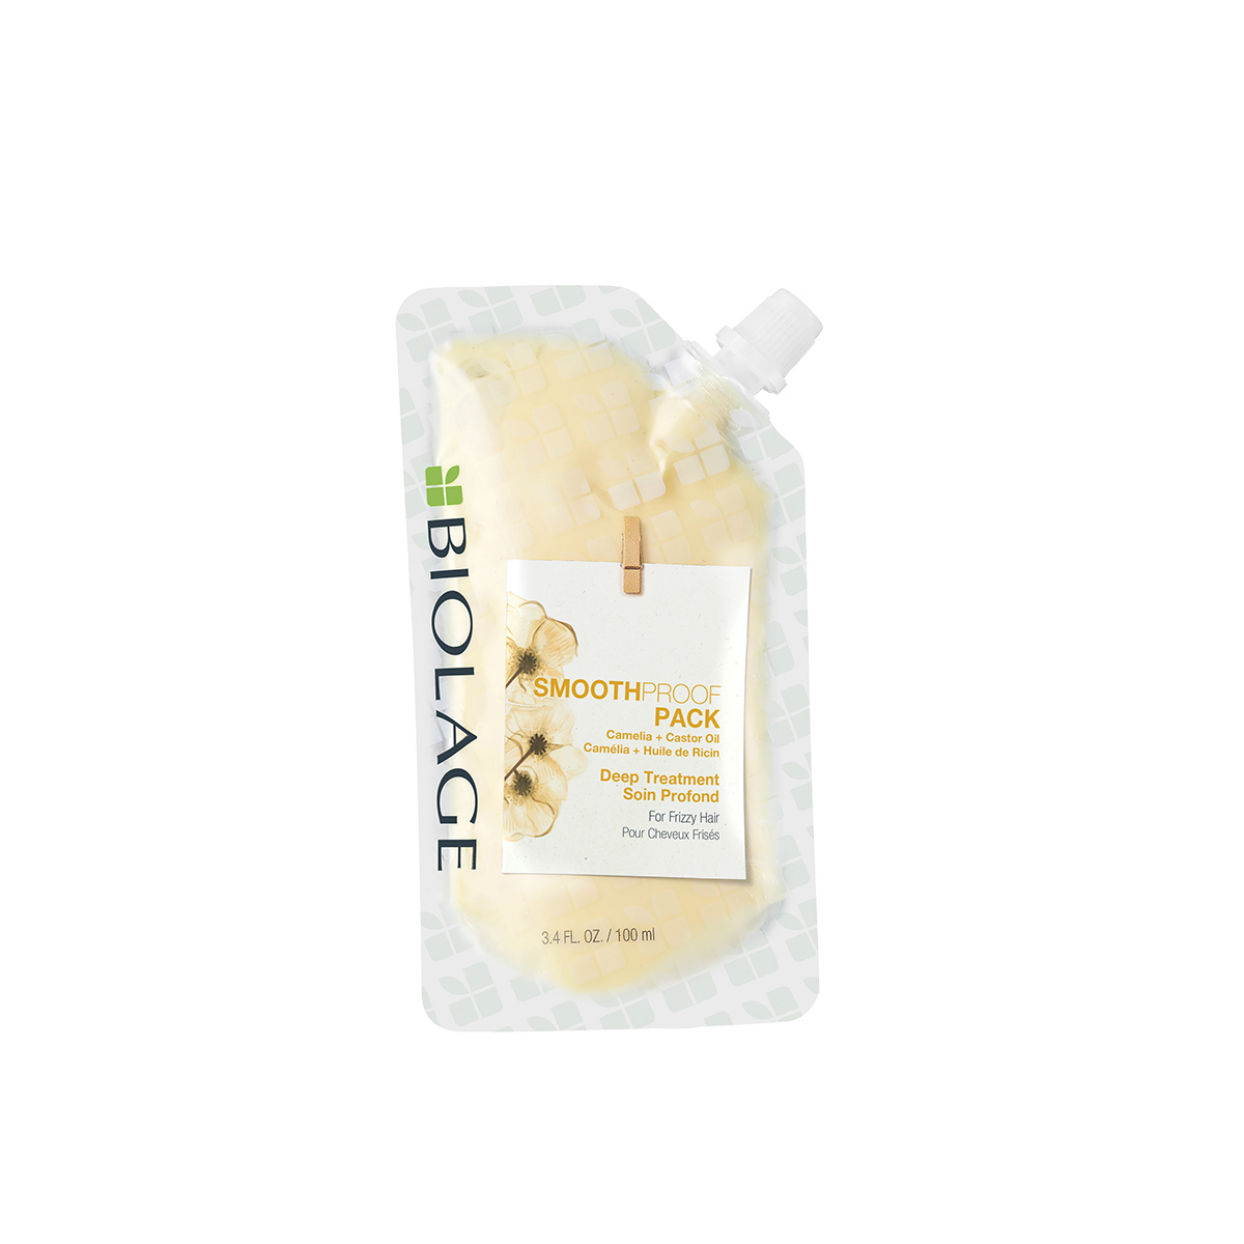 Biolage SmoothProof Deep Treatment Pack Smoothing Deep Treatment Mask for Frizzy Hair2